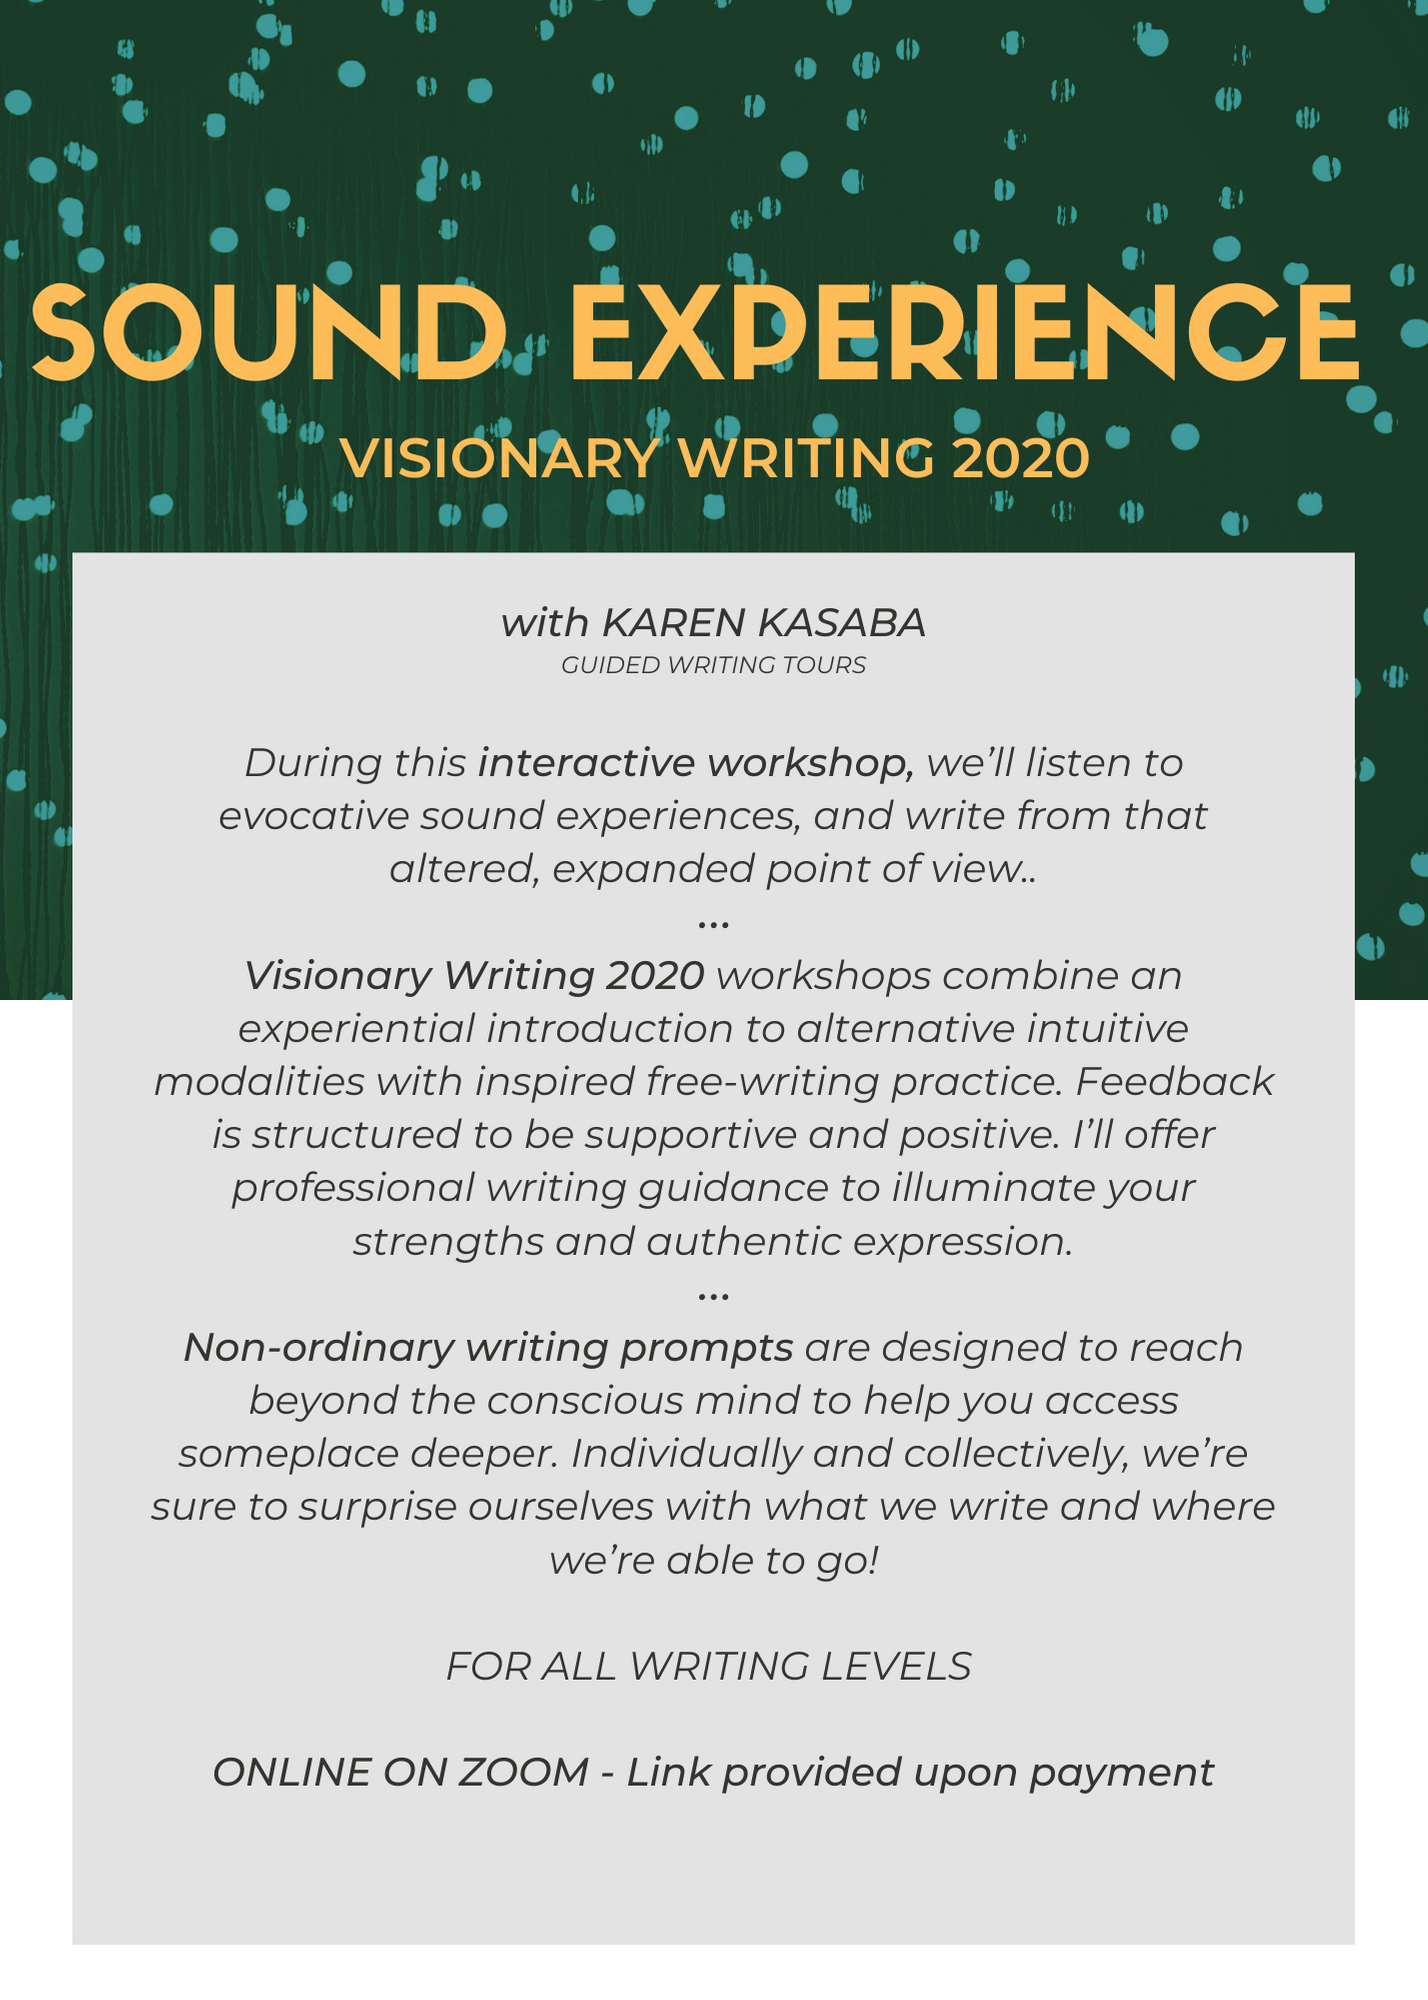 Sound Experience - VISIONARY WRITING 2020